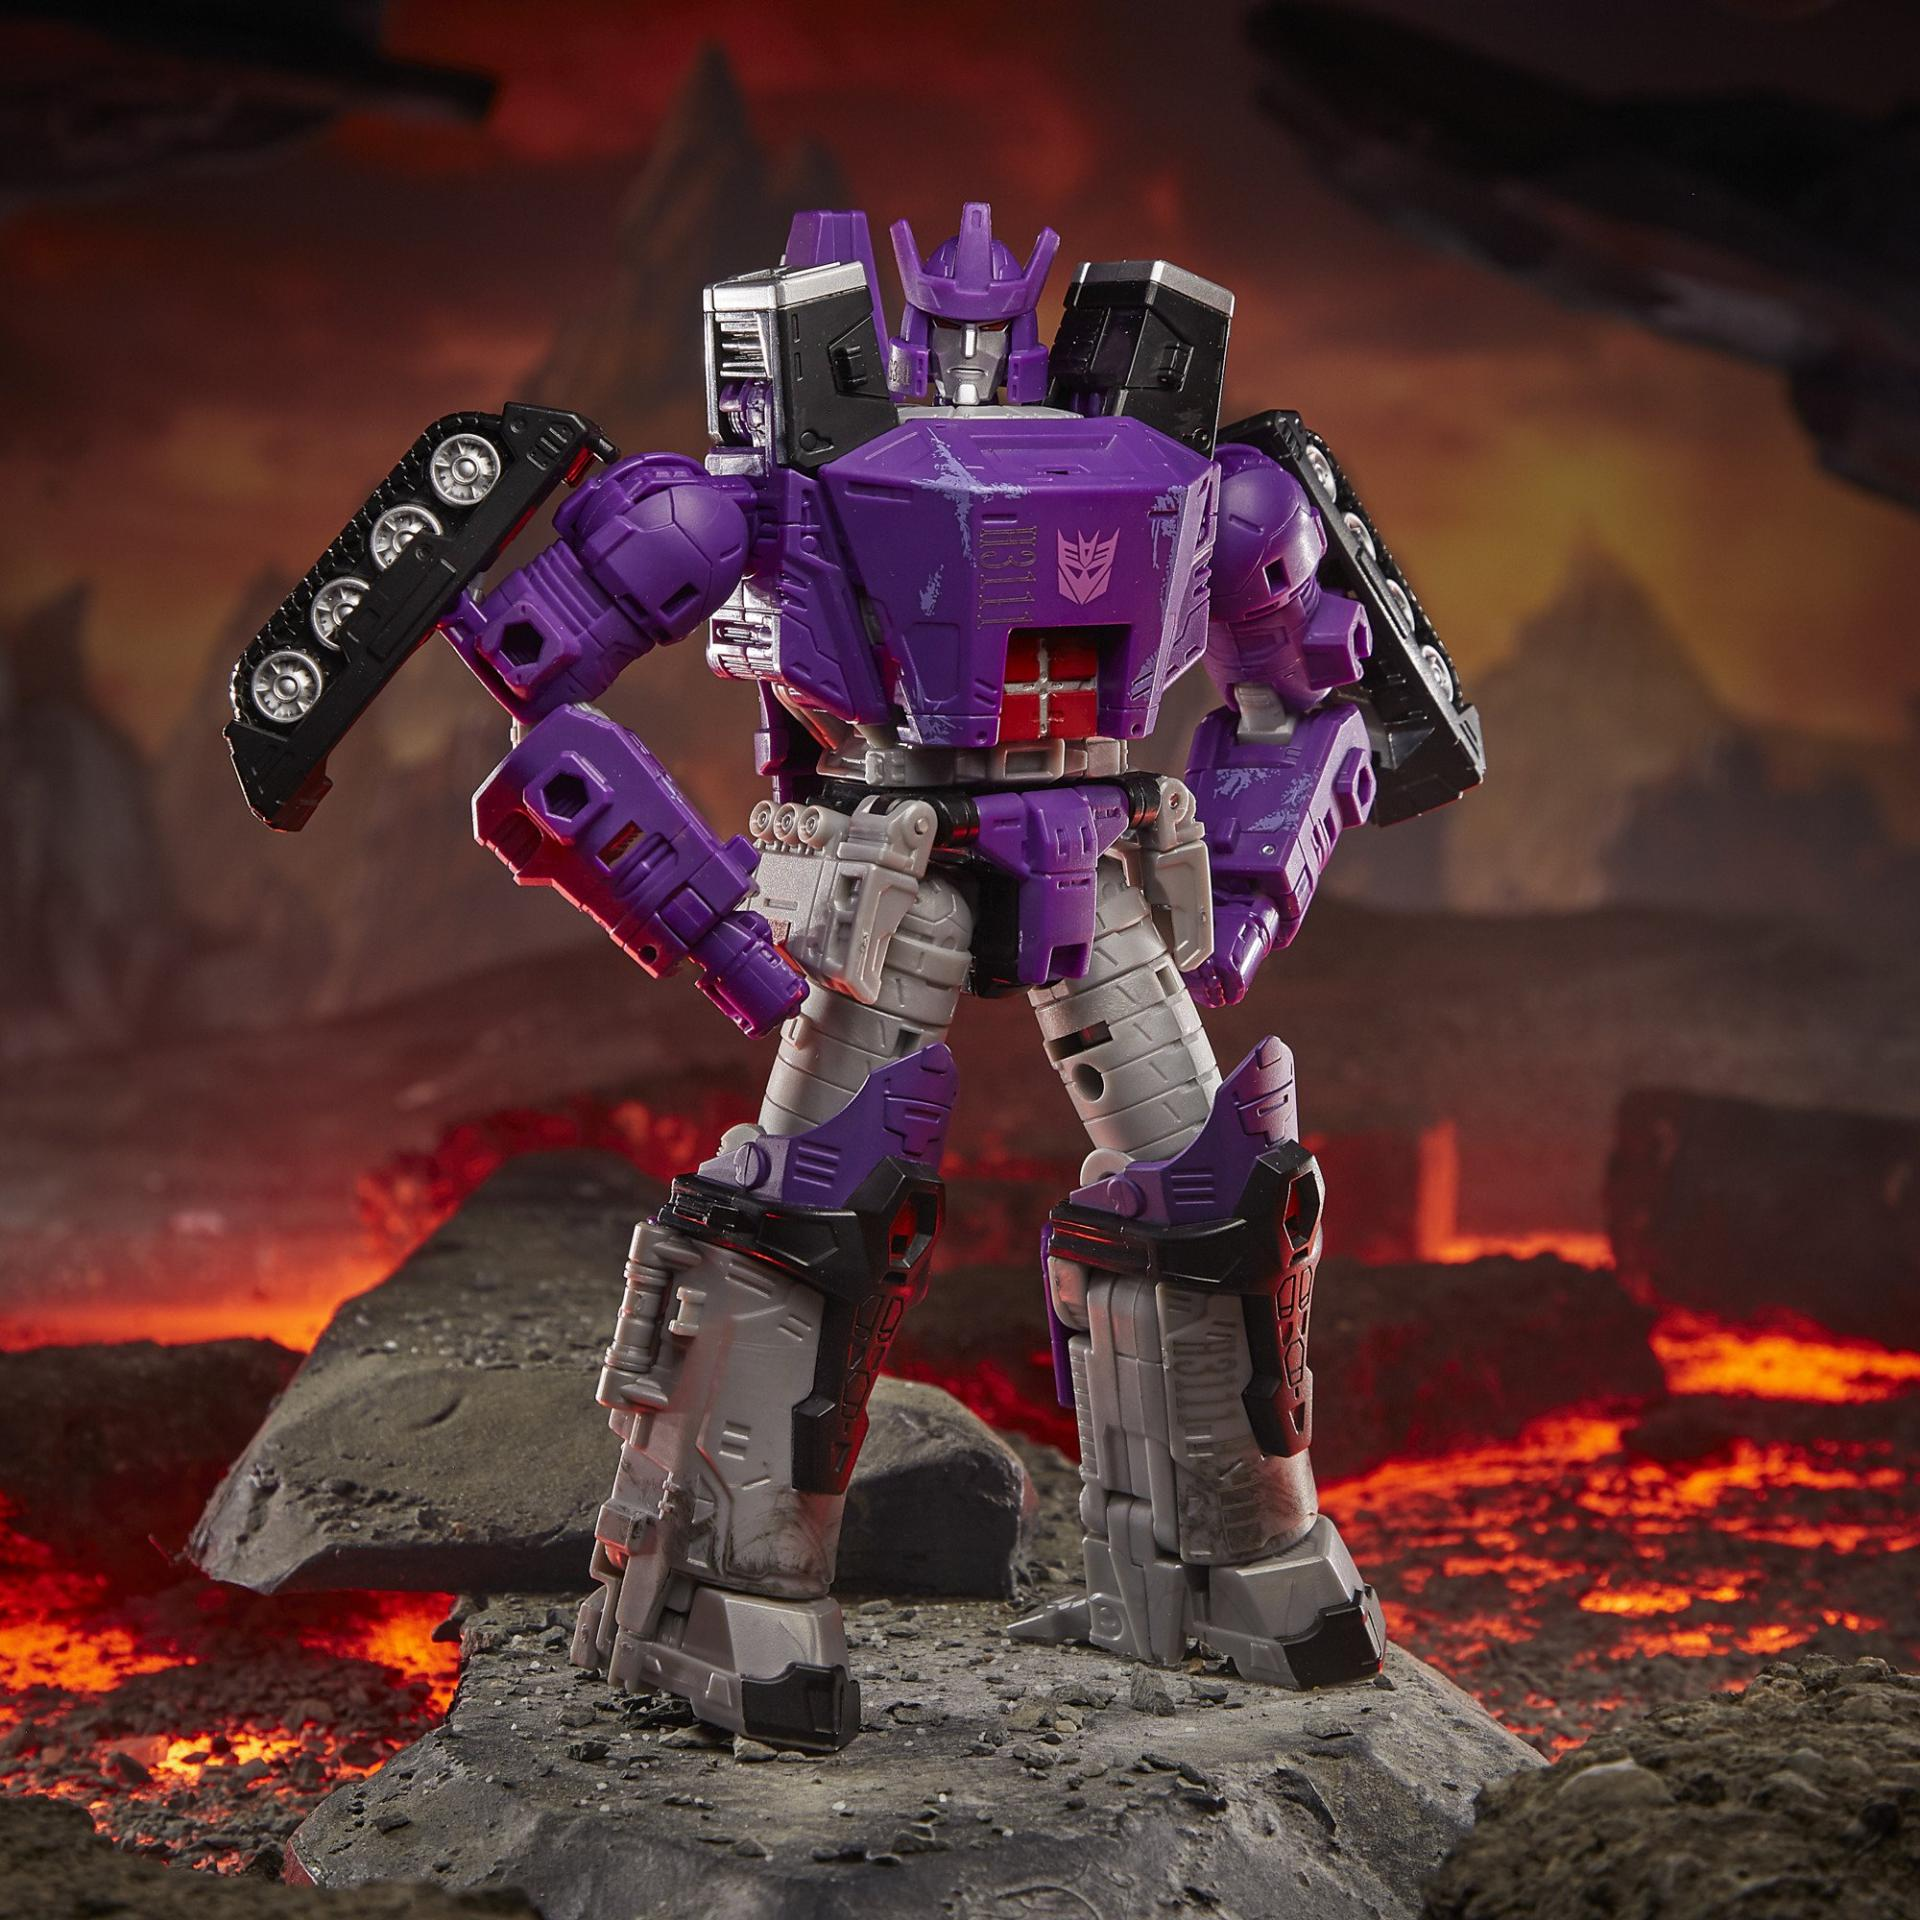 Transformers hasbro generations war for cybertron kingdom leader wfc k28 galvatron5